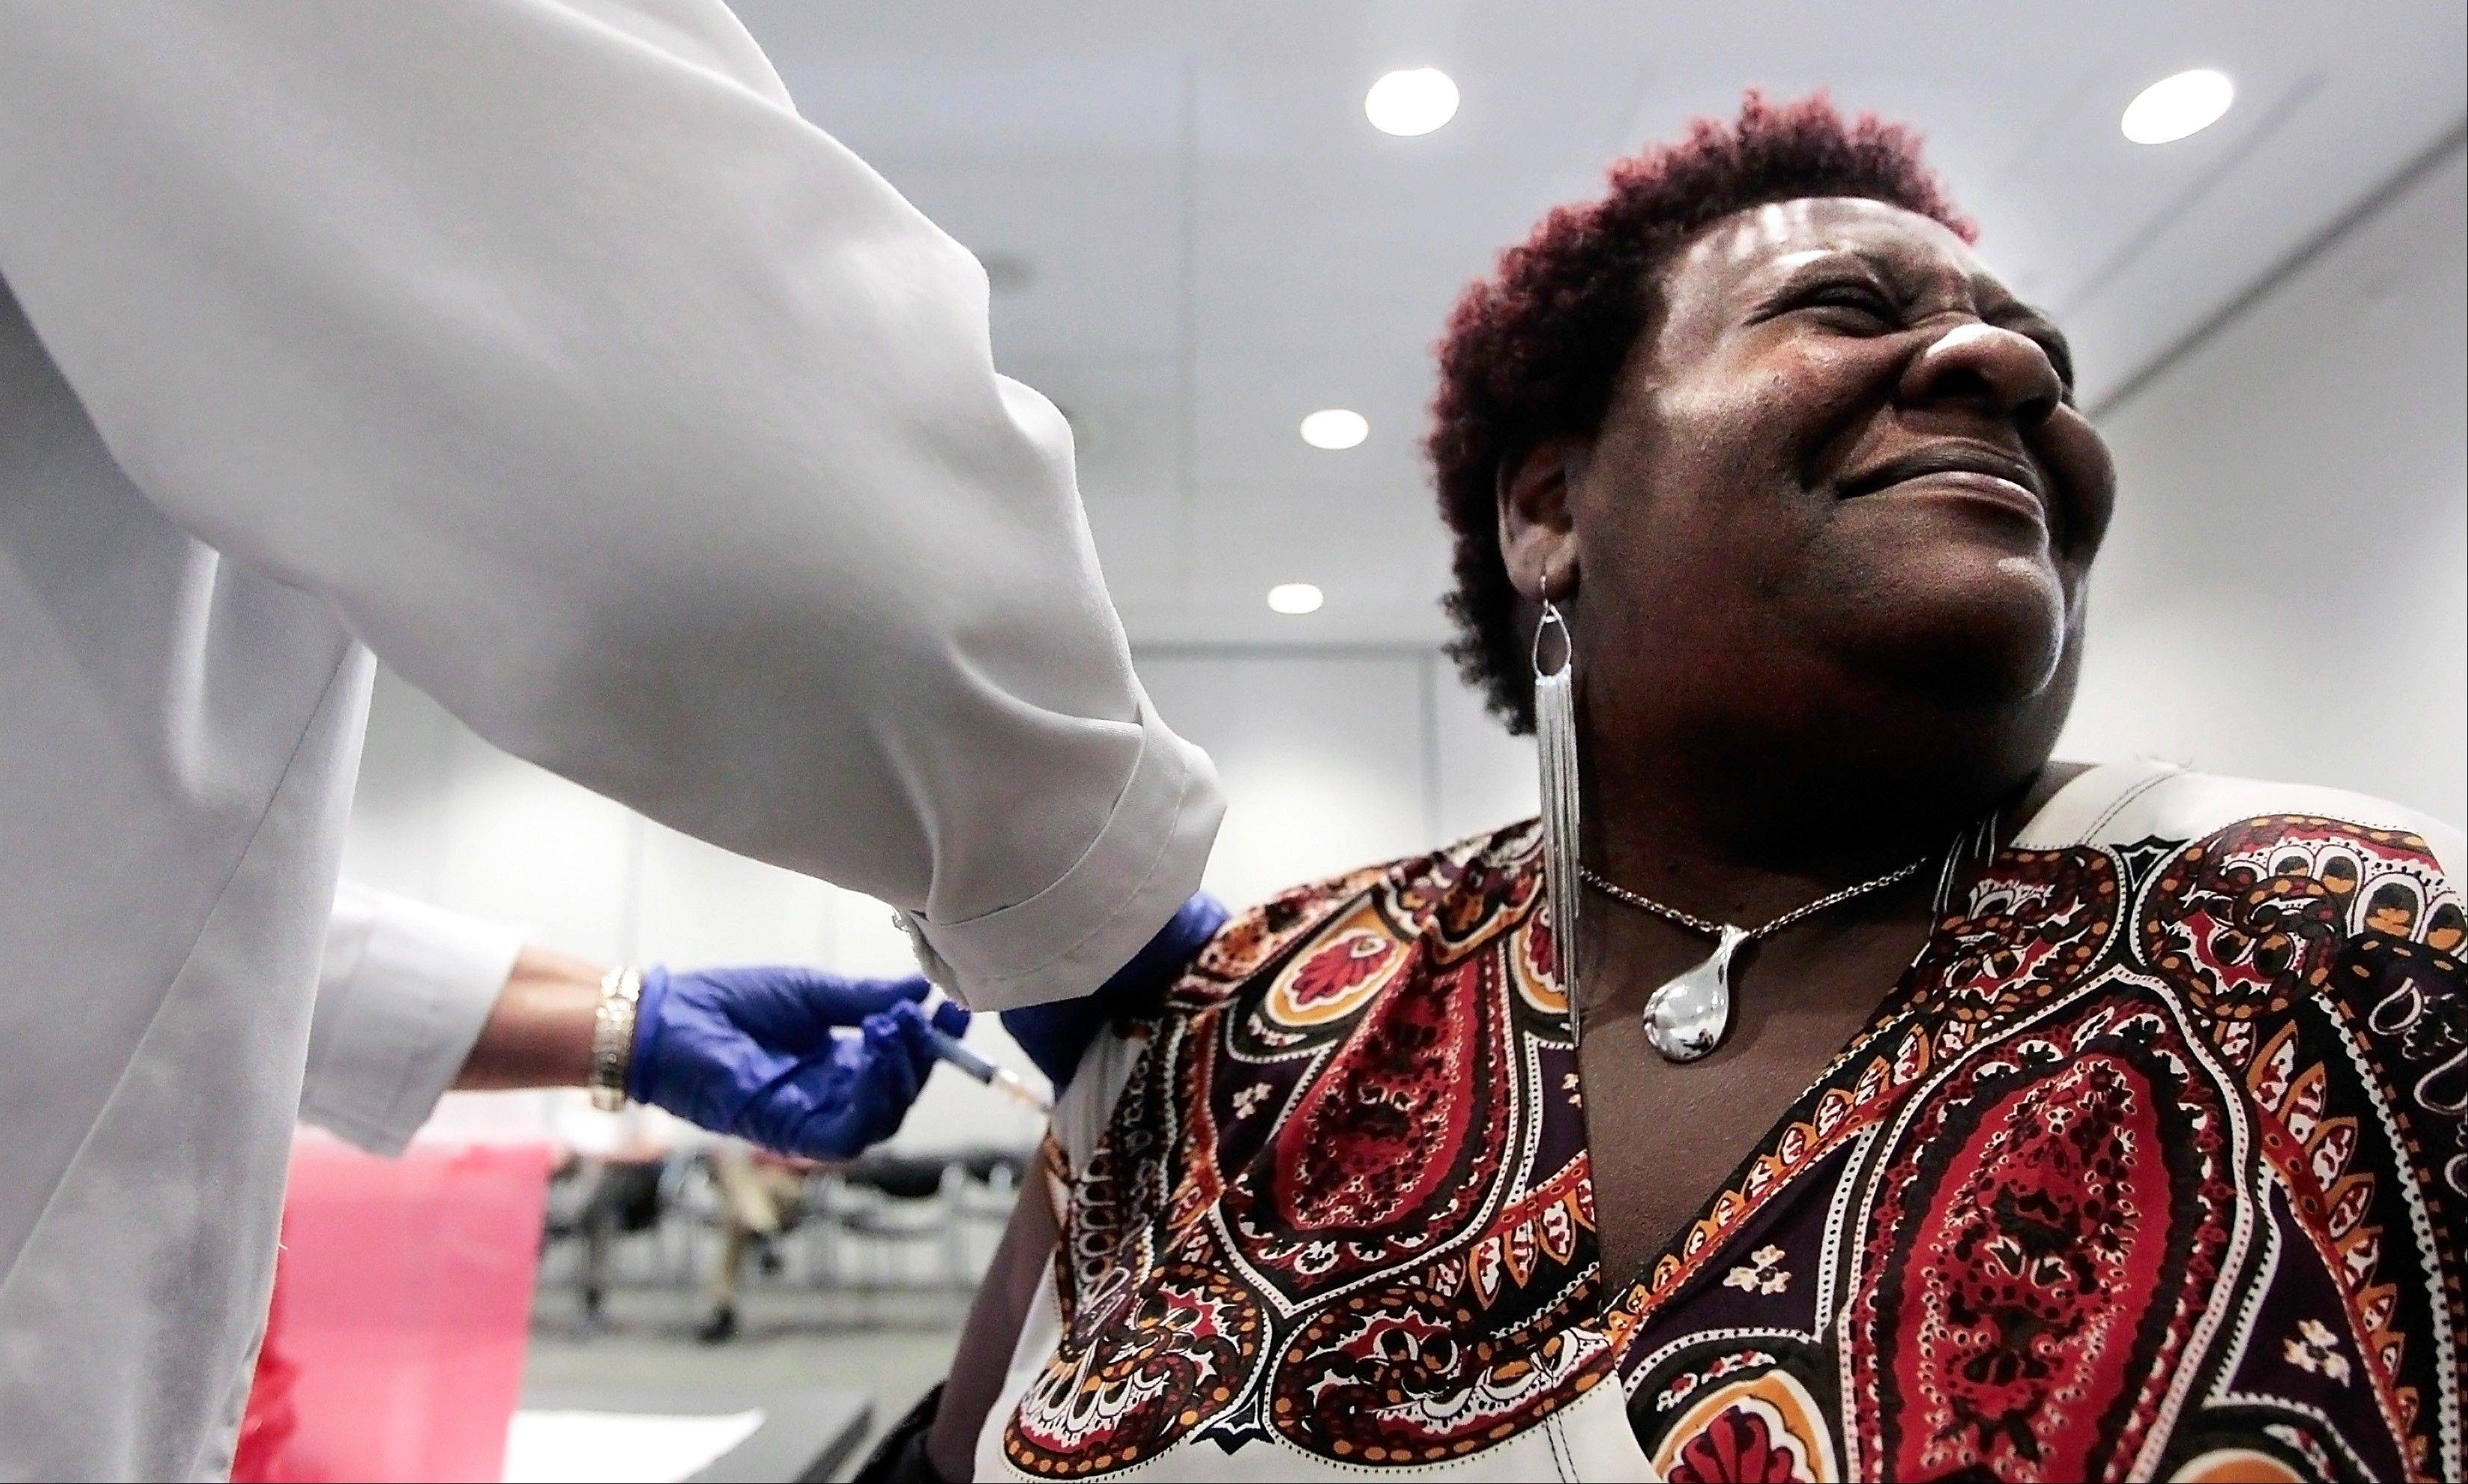 Elizabeth Saint Victor winces as she gets a free flu shot from LPN Jean Buck courtesy of Baptist Healthcare in Memphis, Tenn., at the Central Library. Health officials say flu season is off to its earliest start in nearly 10 years _ and it could be a bad one. Officials said Monday, Dec. 3, 2012 that suspected flu cases have jumped in five southern states _ Alabama, Louisiana, Mississippi, Tennessee and Texas. An uptick in flu reports like this usually doesn't occur until after Christmas.